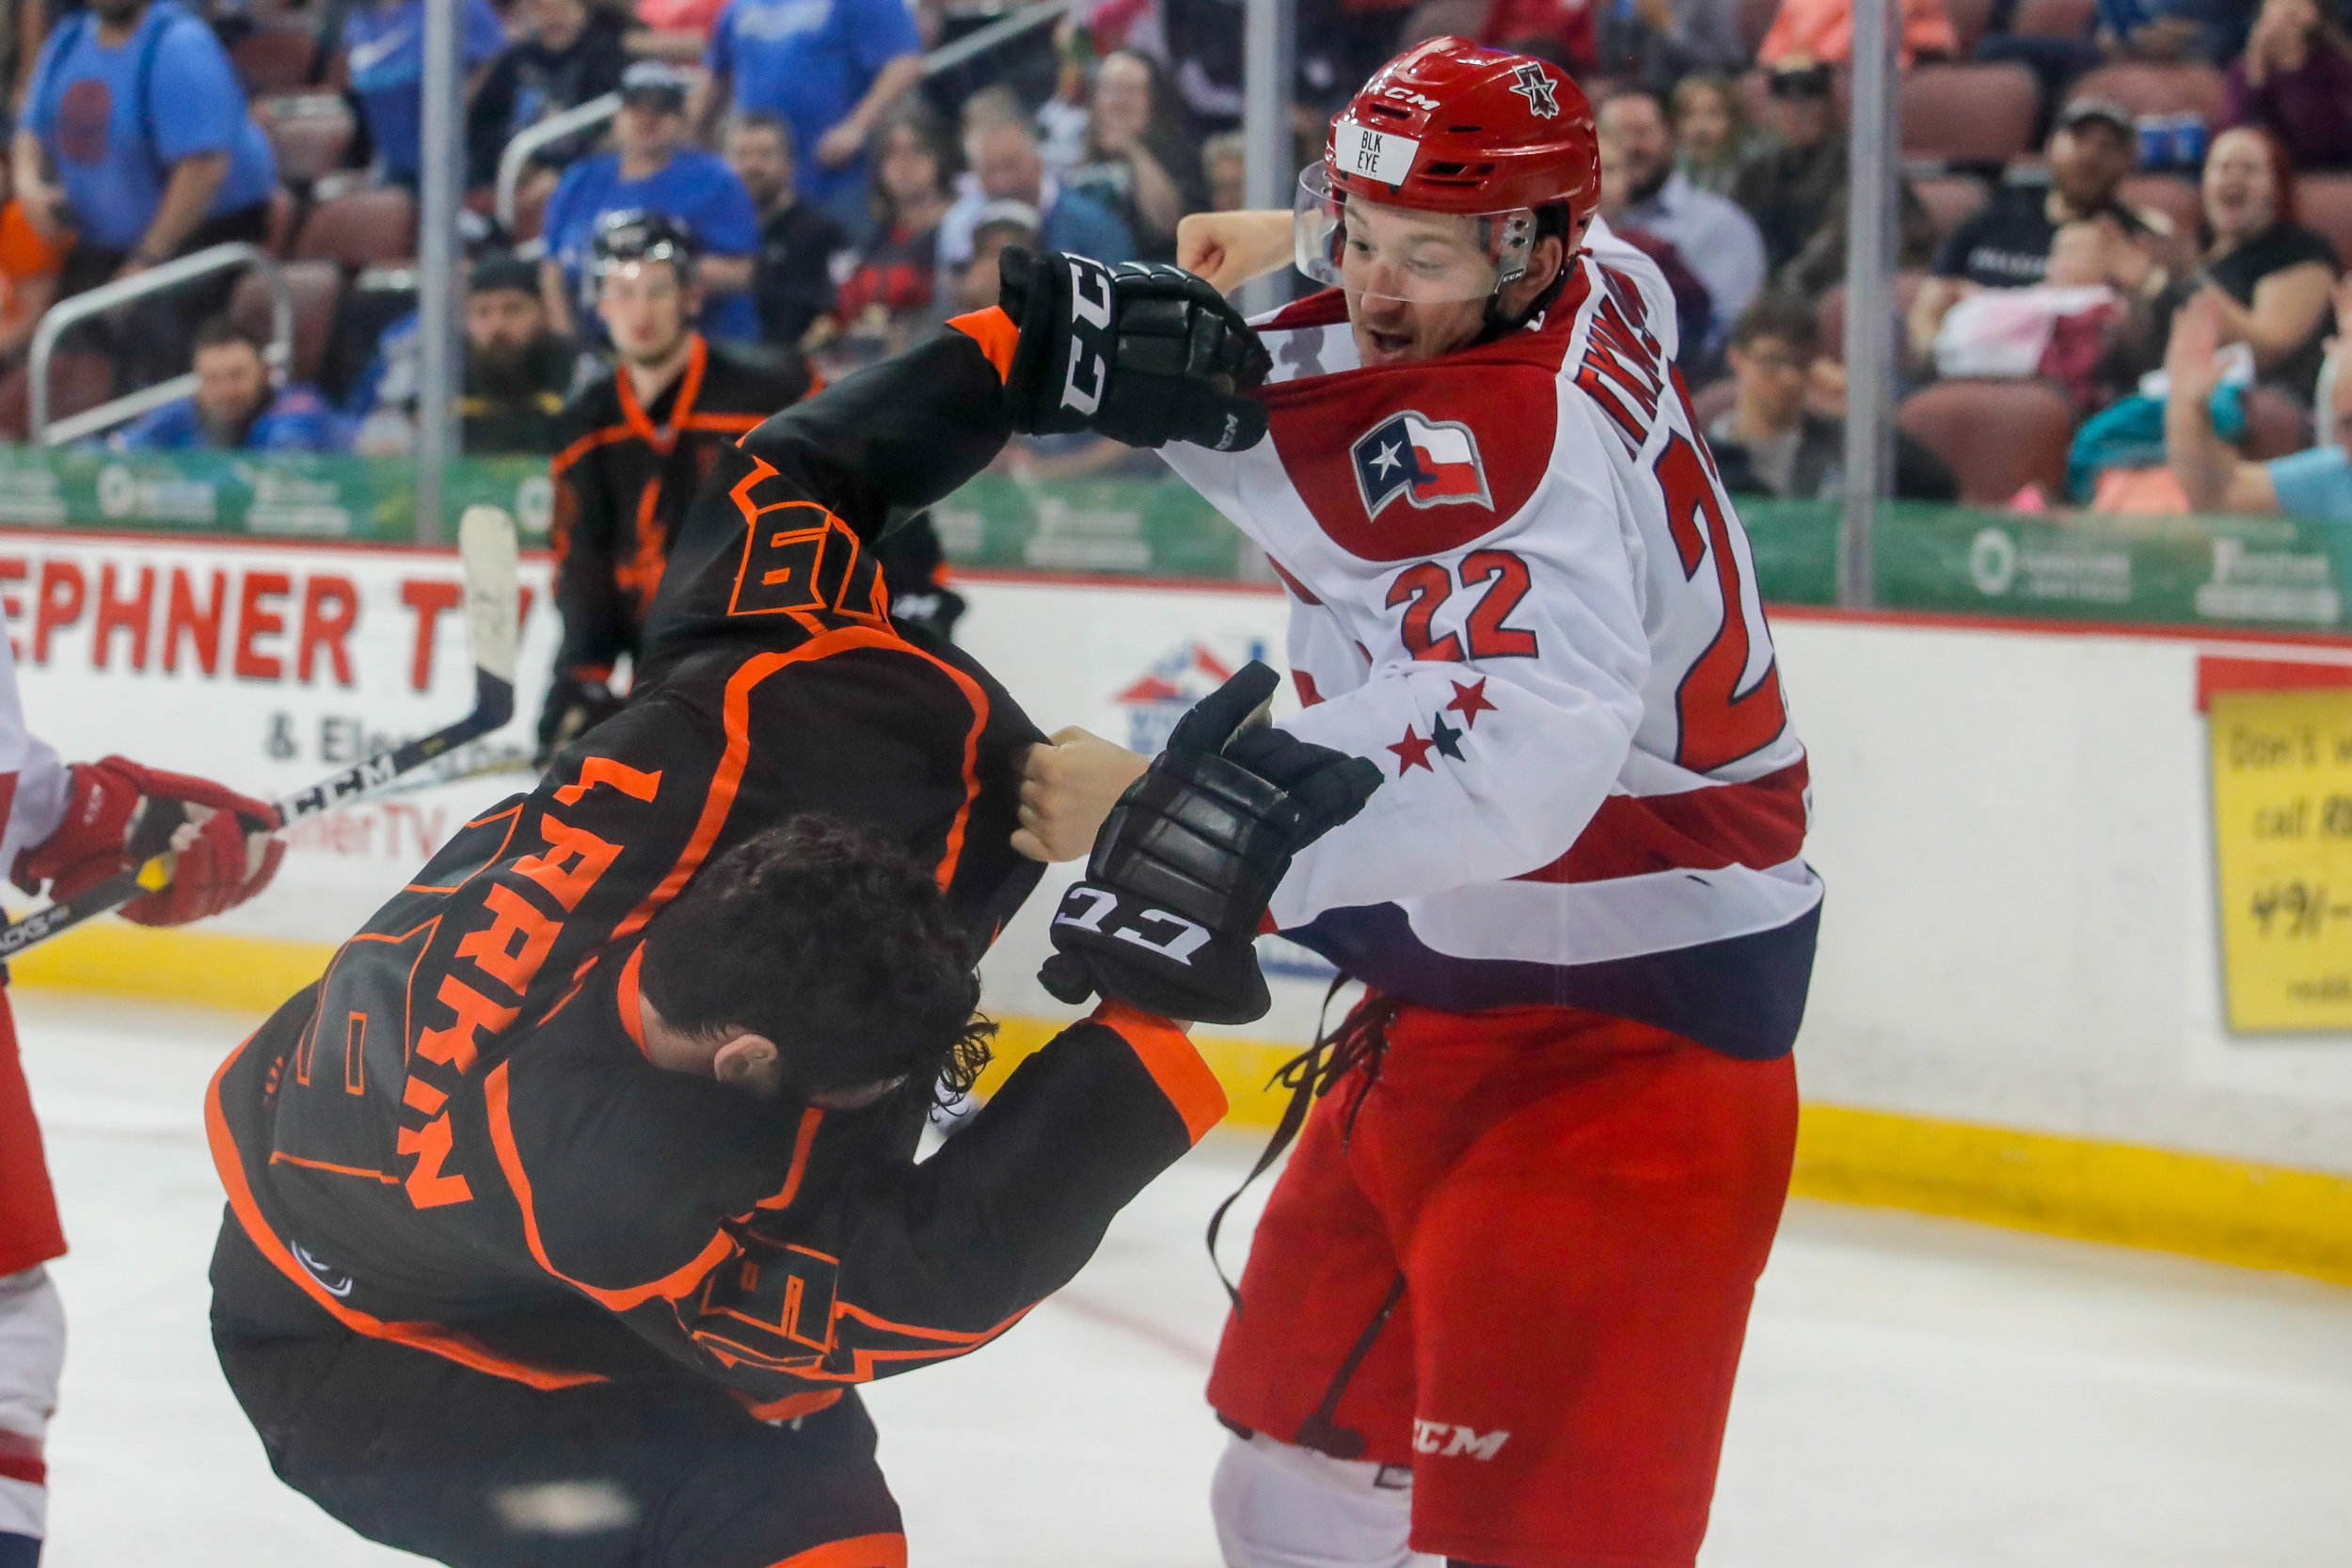 Wichita Thunder forward Colin Larkin fights Allen Americans defenseman Josh Atkinson during the third period of the game on April 5, 2019 at INTRUST Bank Arena. (Photo by Joseph Barringhaus/The Sunflower).